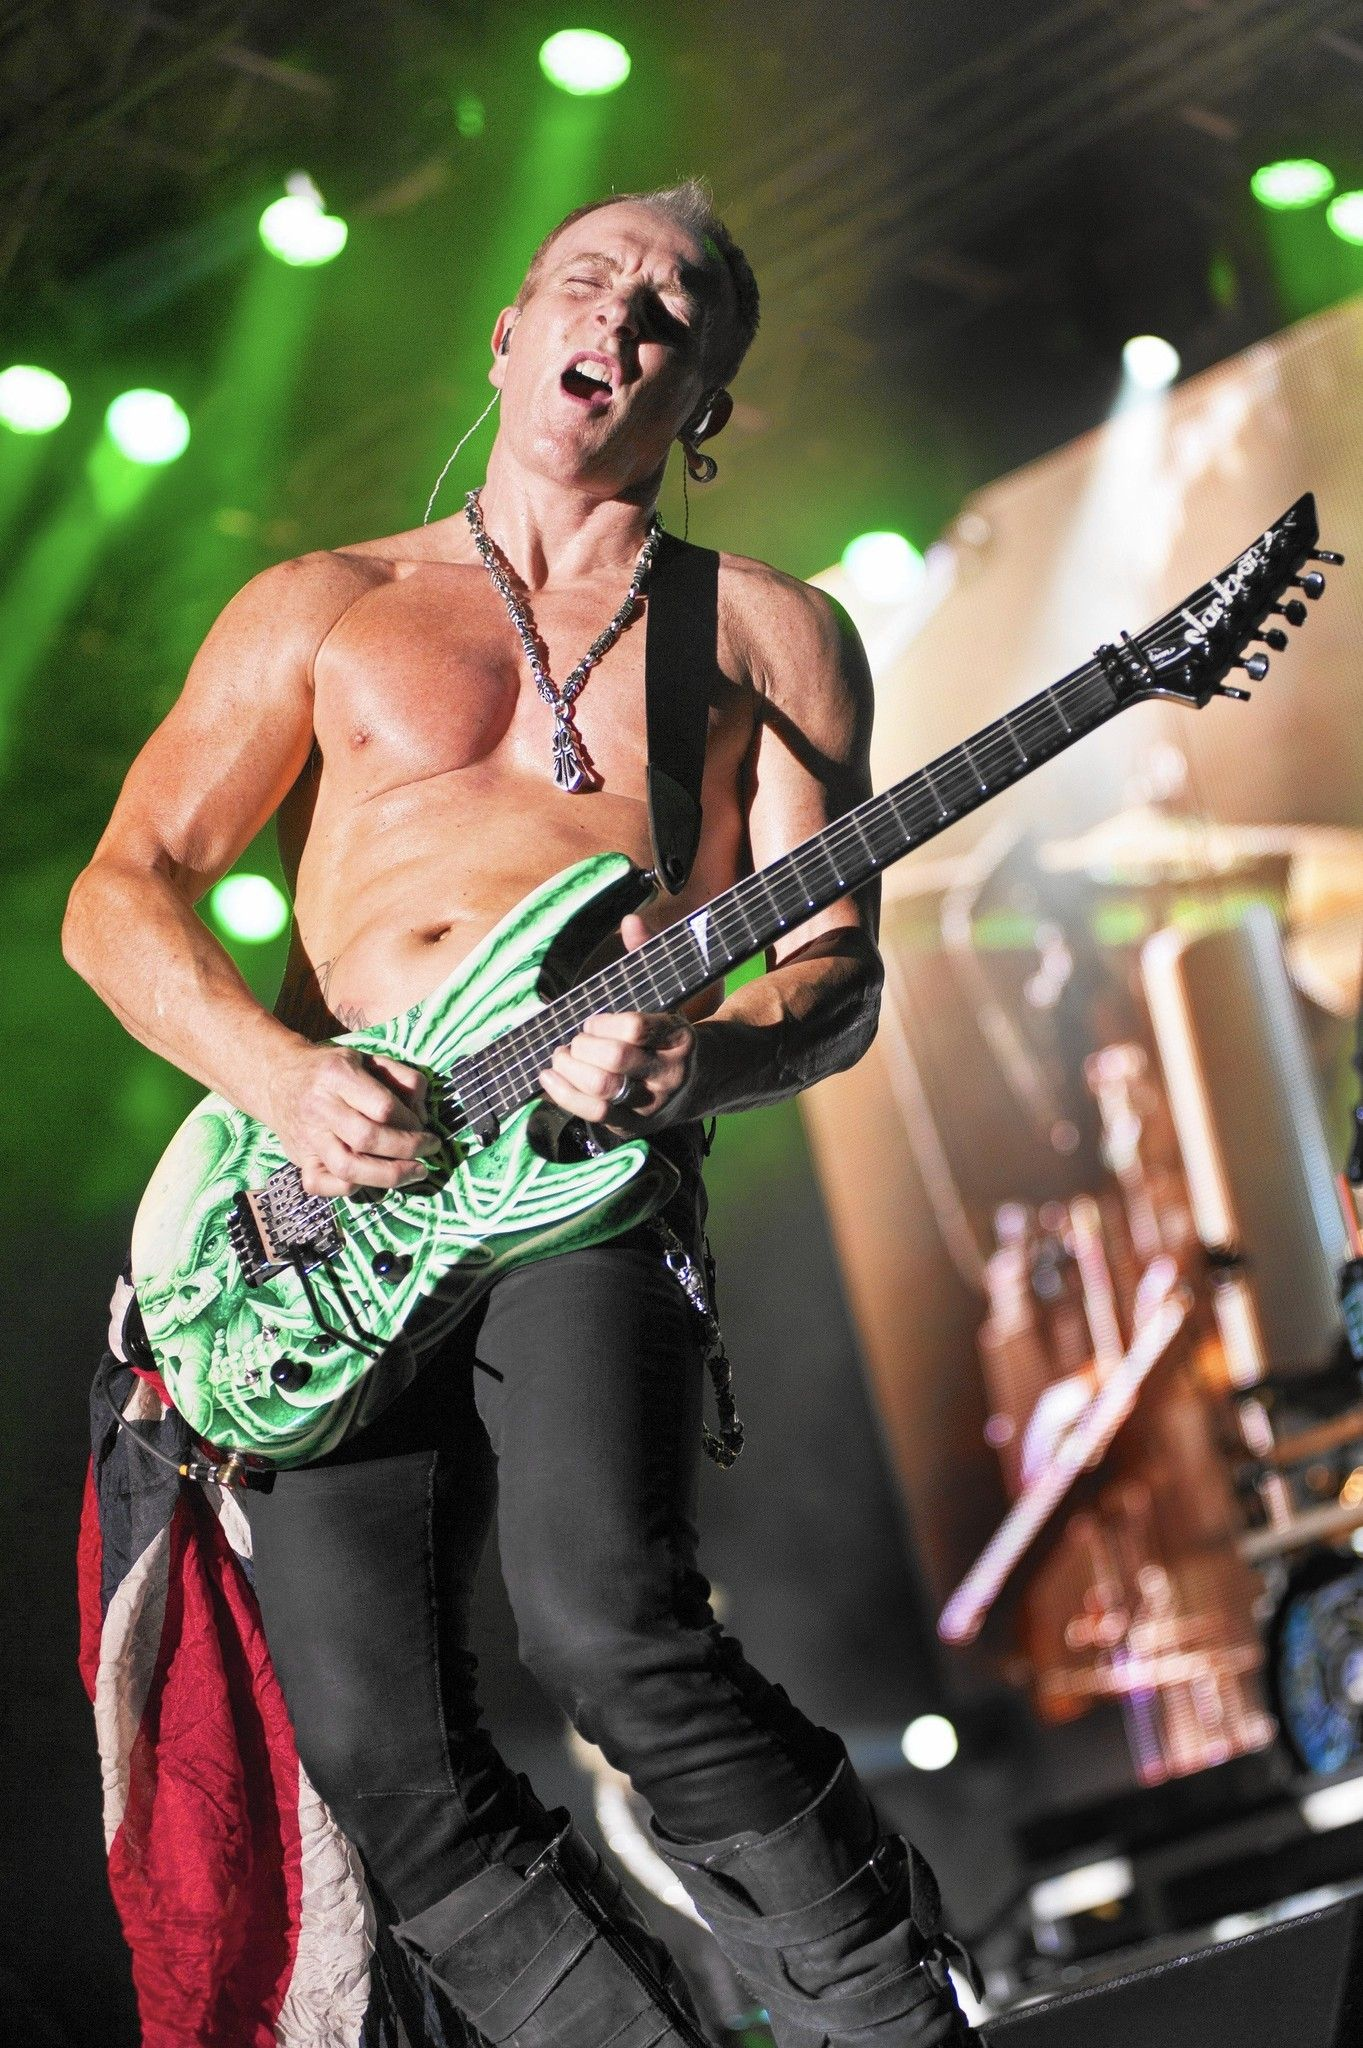 How Def Leppard S Phil Collen Traded The Booze For A Better Body Phil Collen Def Leppard Phil